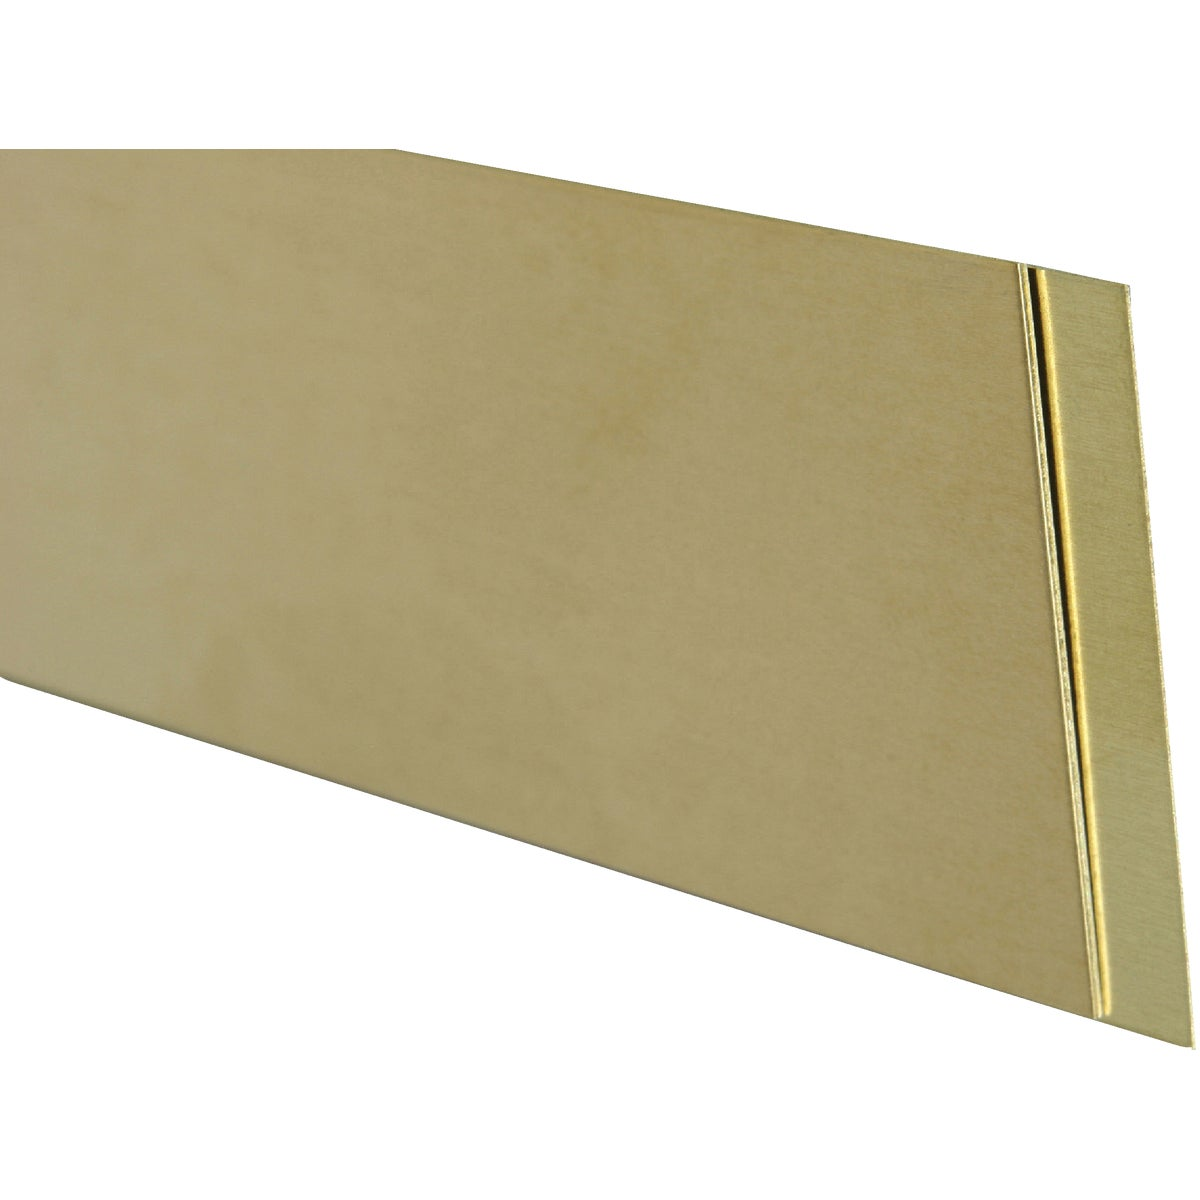 .032X1/2X12 BRASS STRIP - 8241 by K&s Precision Metals